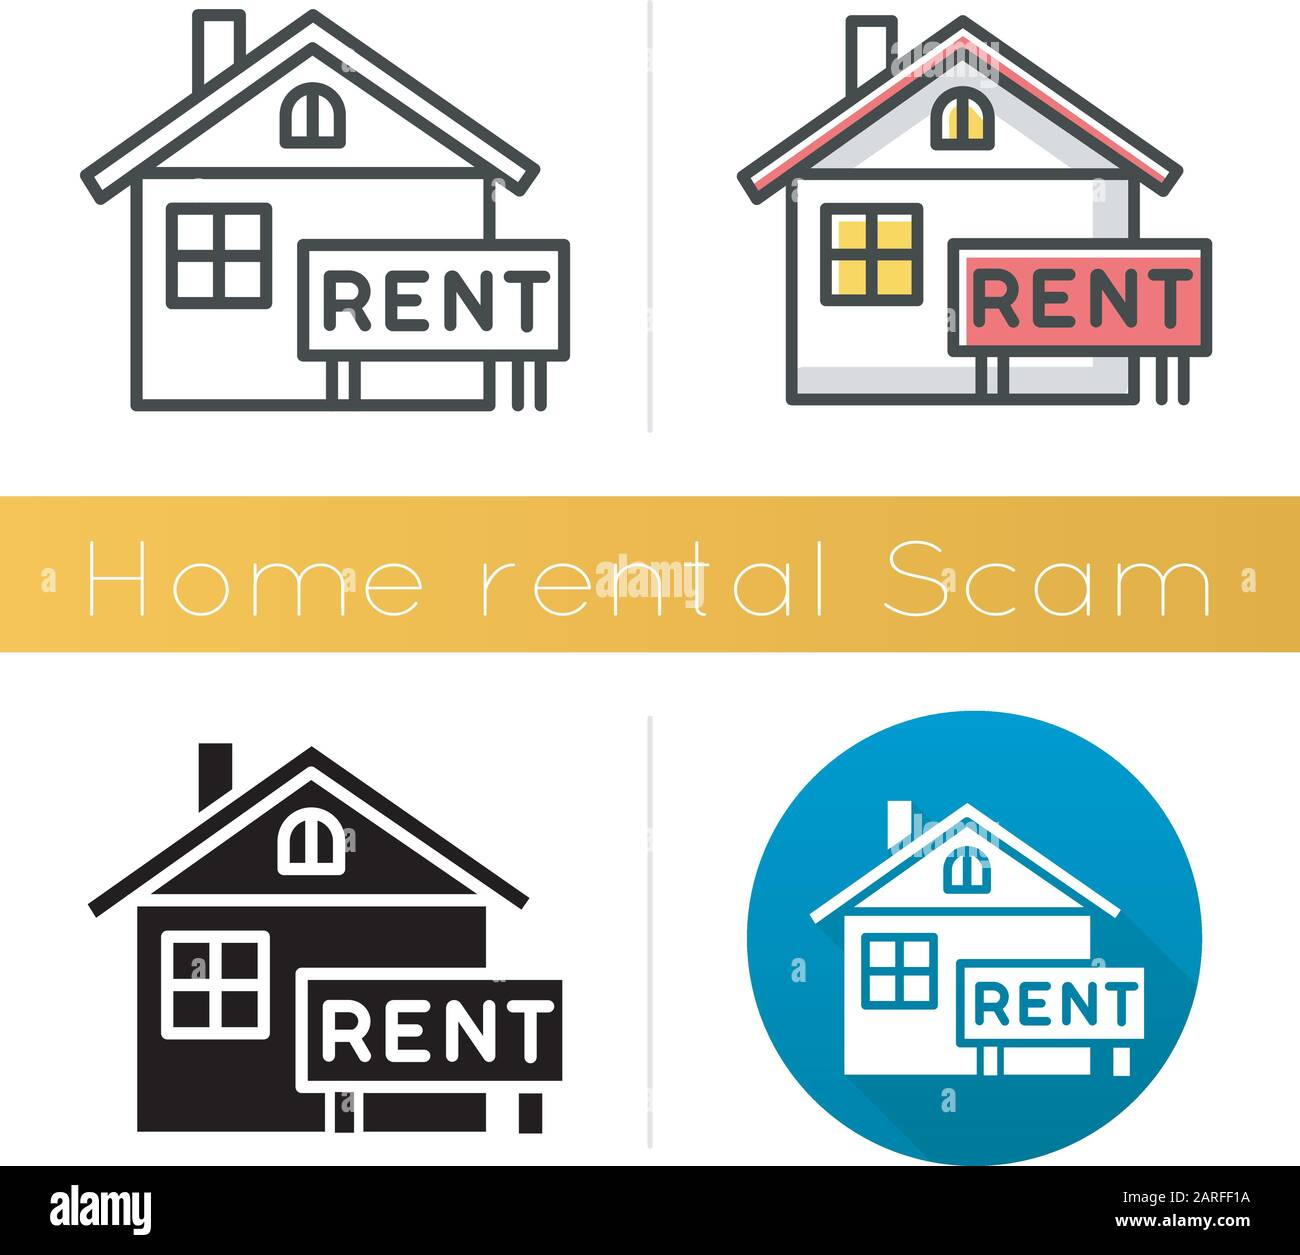 Agent Fake home rental scam icon. house, apartment for rent. fake real